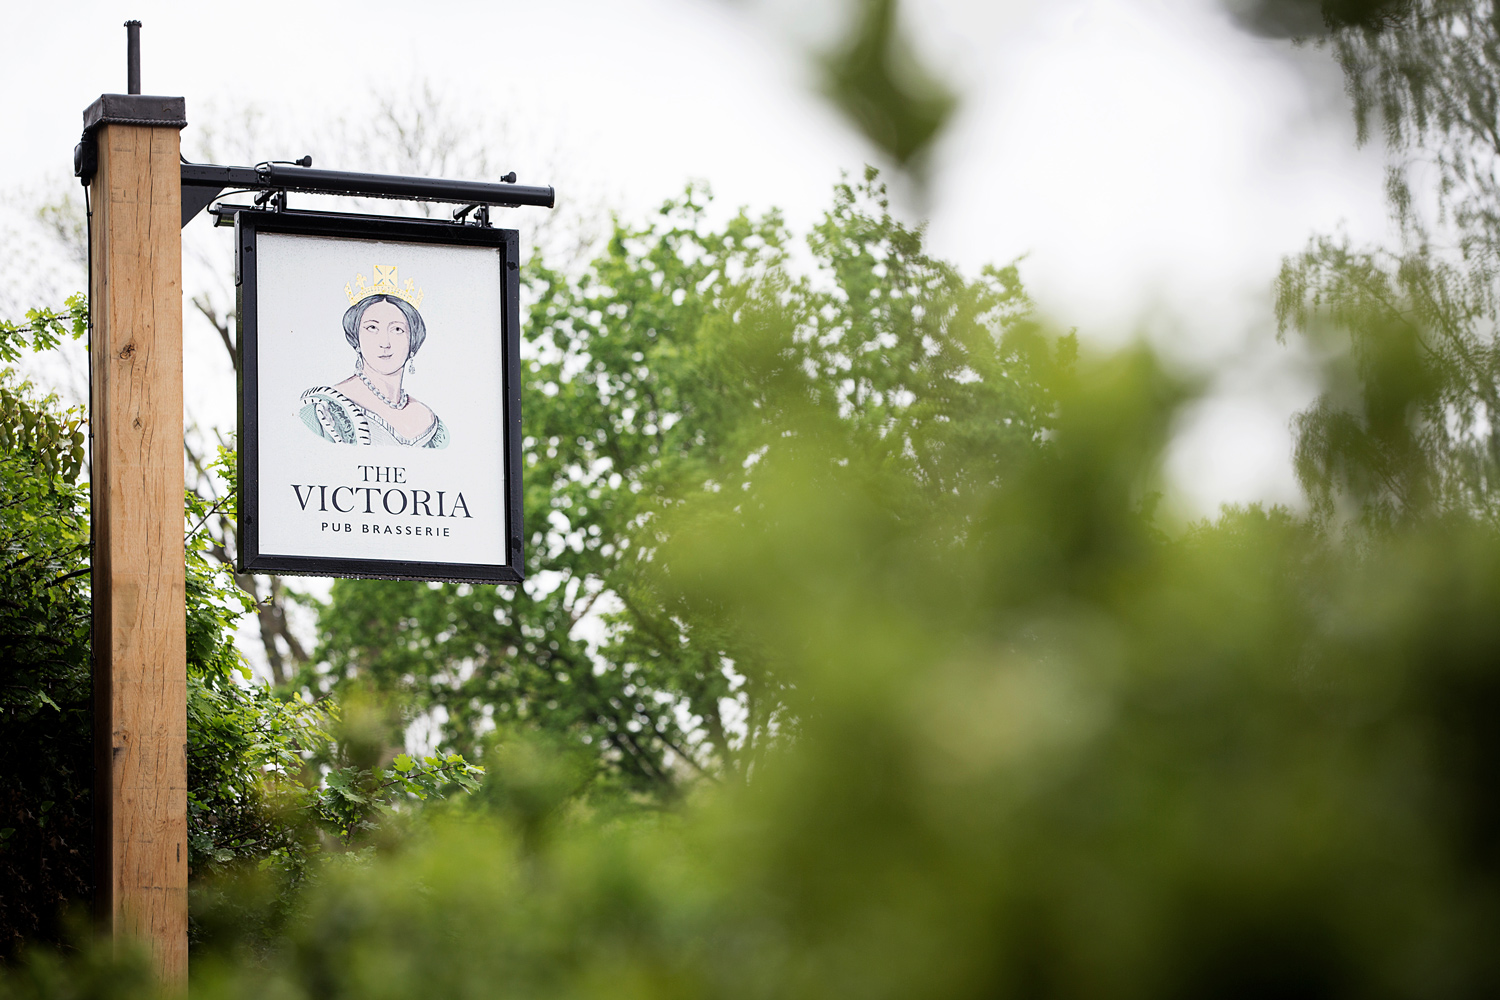 Pub swing sign for The Victoria, Oxshott by Saint Design